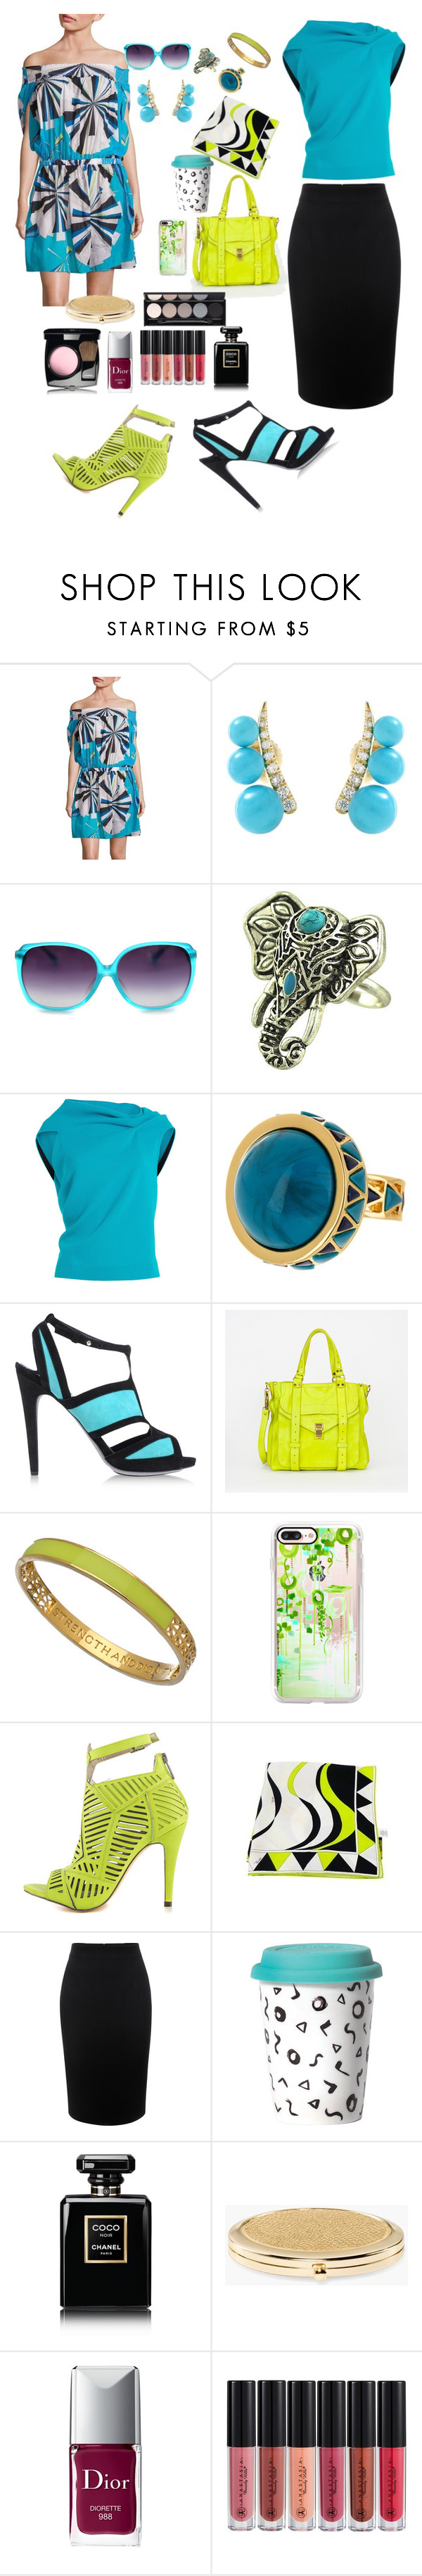 """""""💋"""" by artisans ❤ liked on Polyvore featuring Emilio Pucci, Jemma Wynne, Roland Mouret, House of Harlow 1960, Aperlaï, Proenza Schouler, Matterial Fix, Casetify, Michael Antonio and Alexander McQueen"""